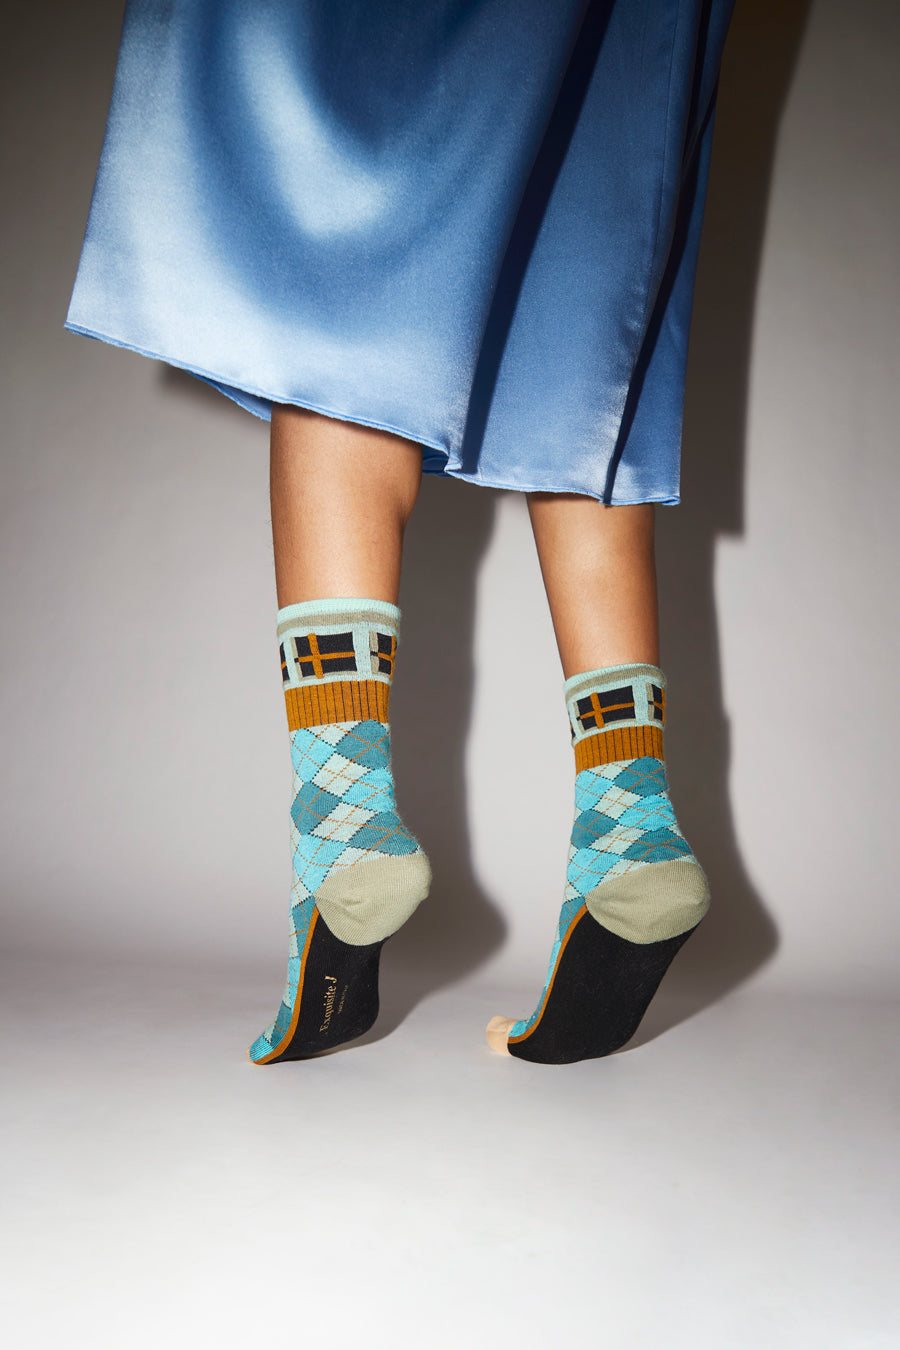 Exquisite J Plaid Socks in Neon Blue